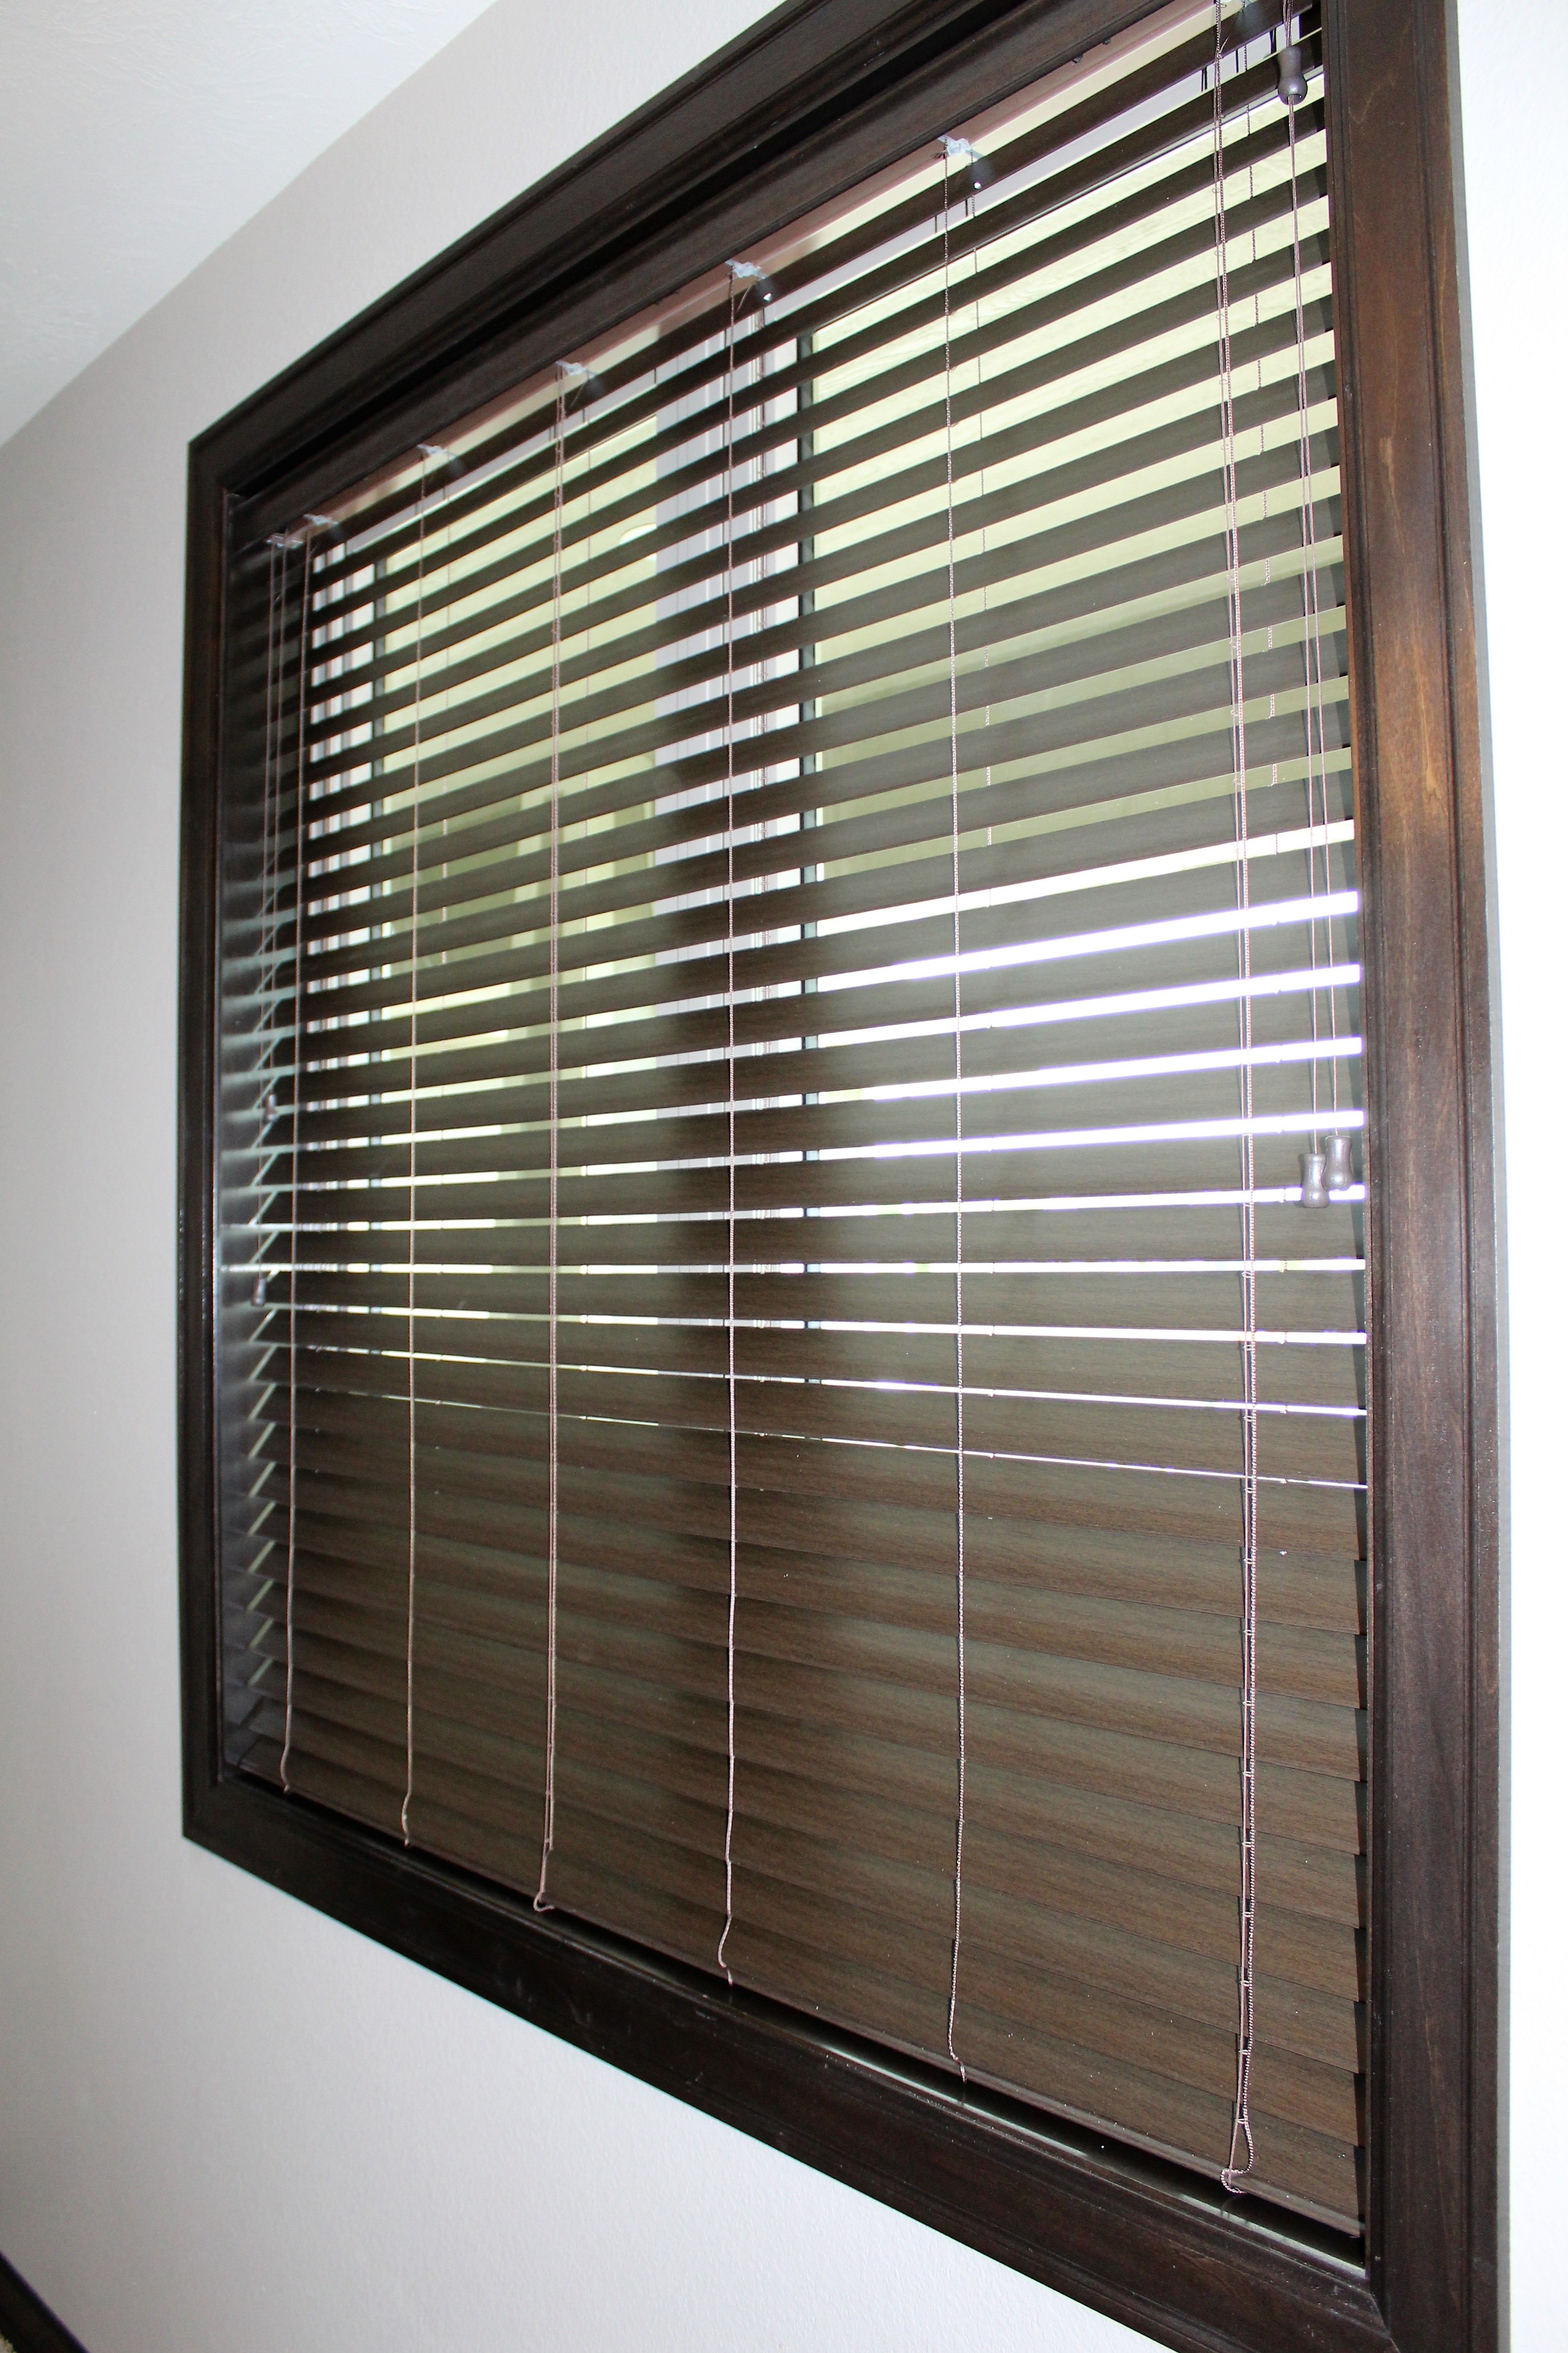 Zebra window coverings  pin by budget blinds of sioux falls on wood blinds  pinterest